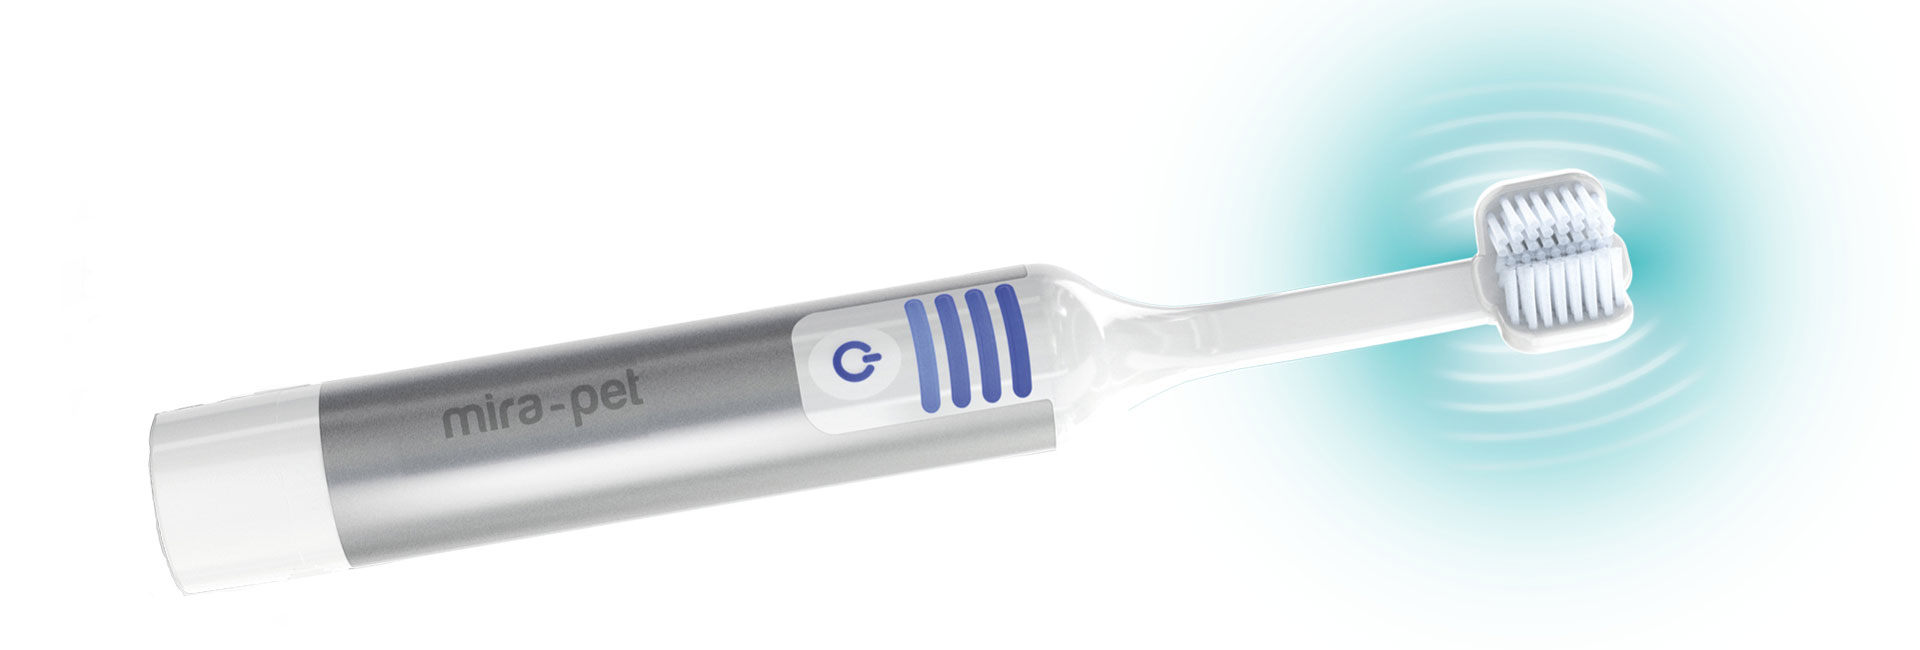 Mira-Pet Ultrasound Toothbrush for dogs, showing the whole toothbrush with ultrasound oscillations